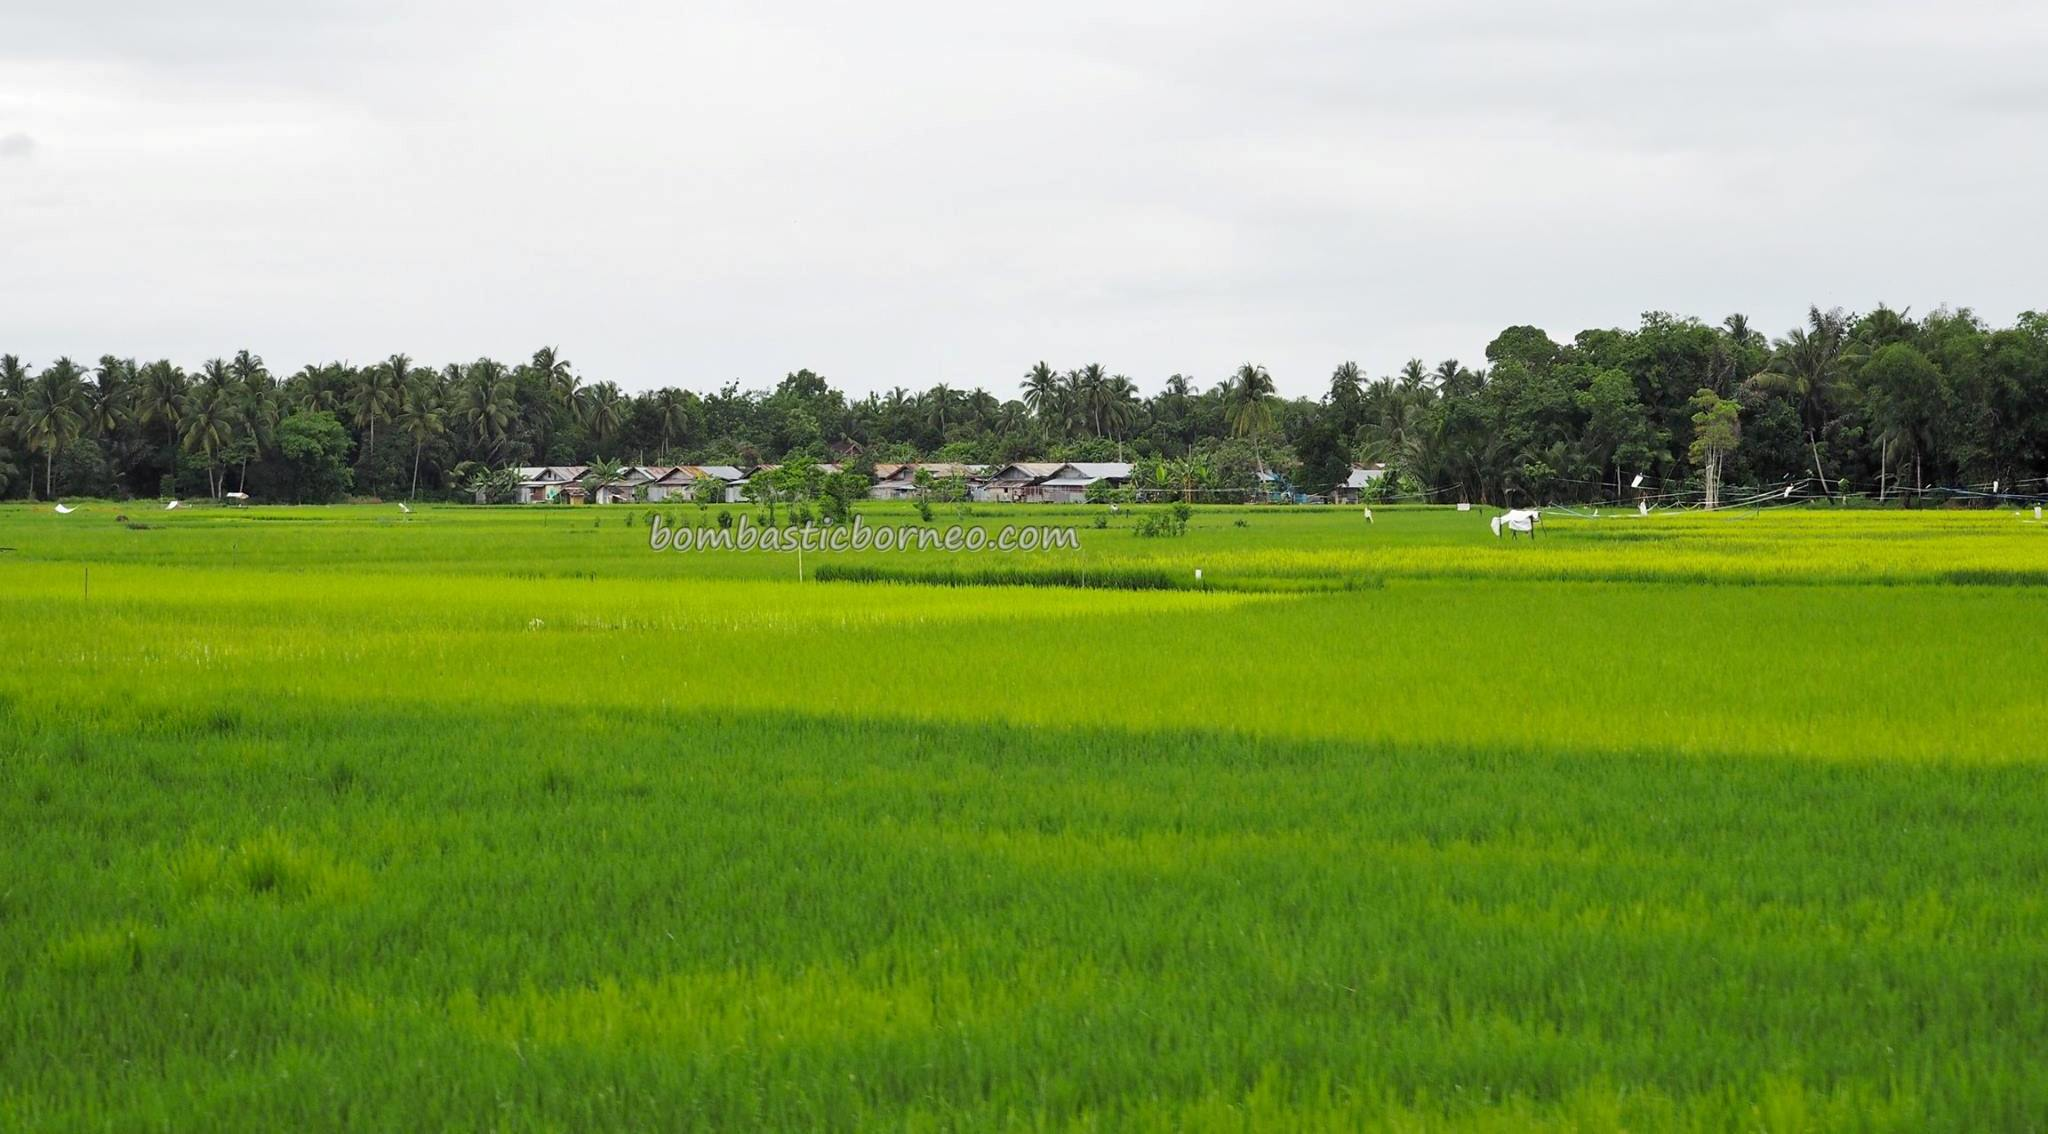 authentic, Indigenous, ethnic, Banjarese, native, paddy field, sawah padi, Tourism, tourist attraction, obyek wisata, traditional, travel guide, village, 婆罗州, 稻田景点